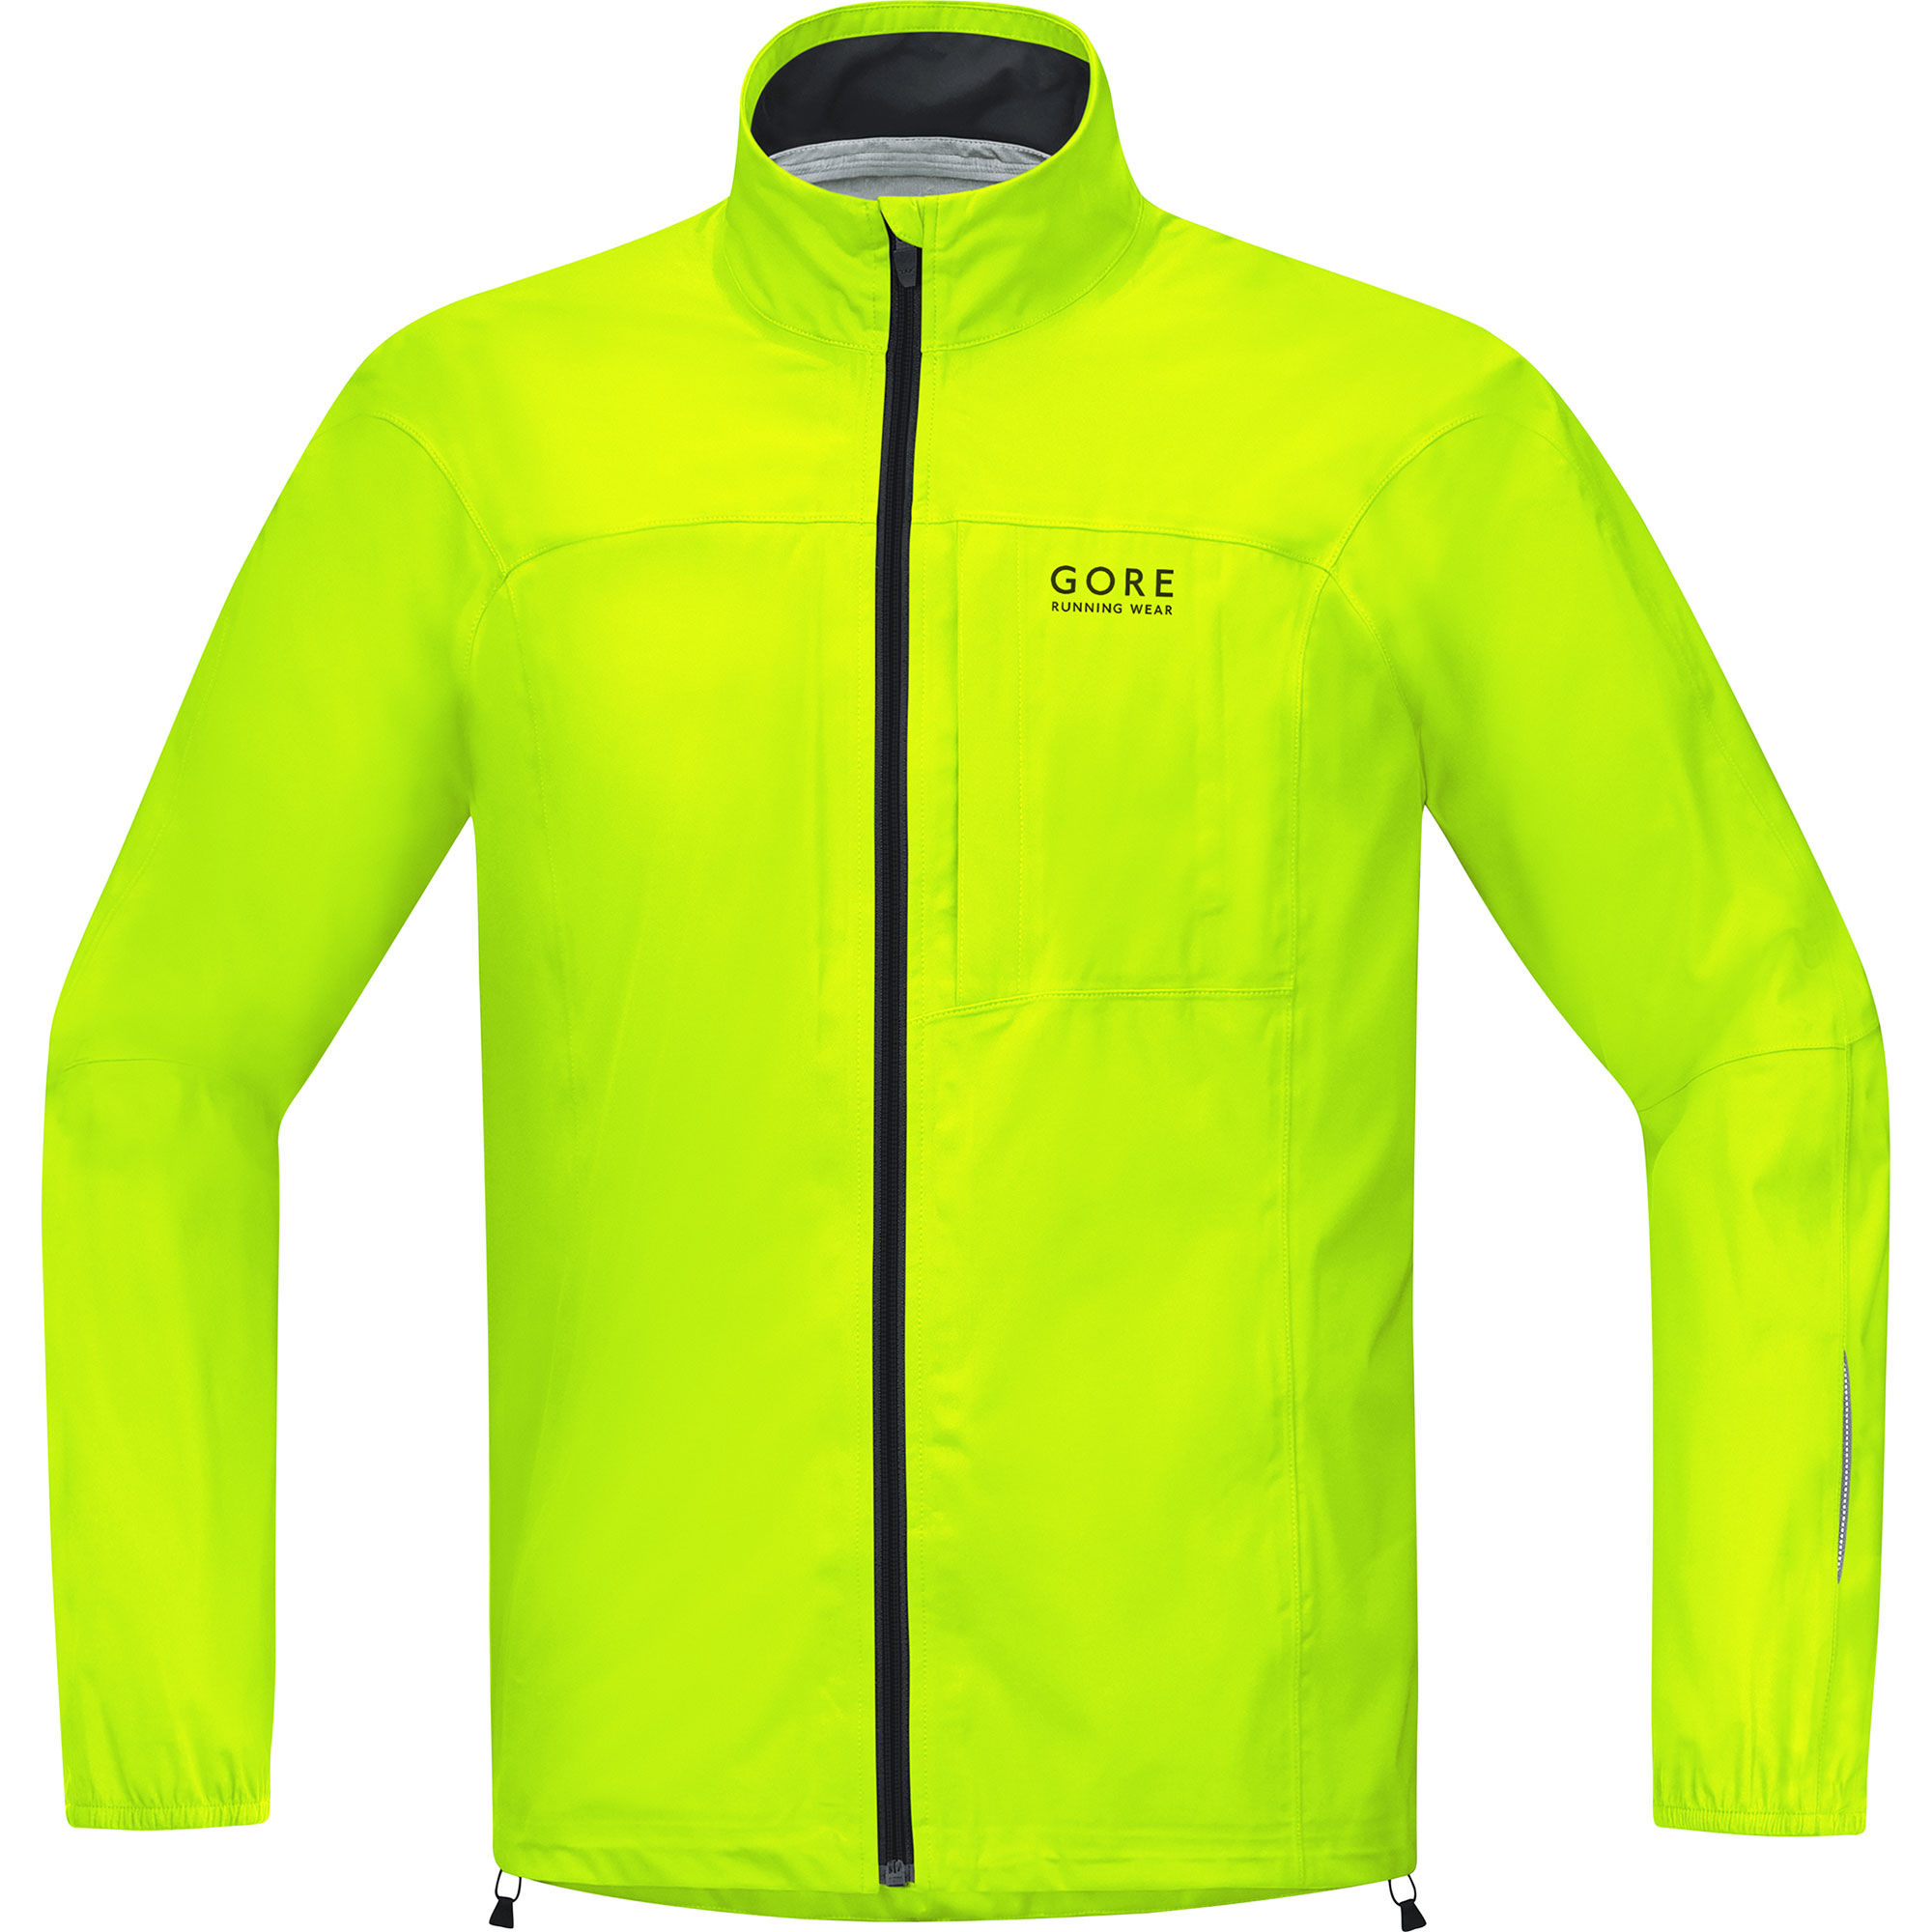 The Gore Essential GTX AS Jacket features the impressive Gore-Tex  technology for a warm yet breathable jacket that is light and waterproof. adf5243e5